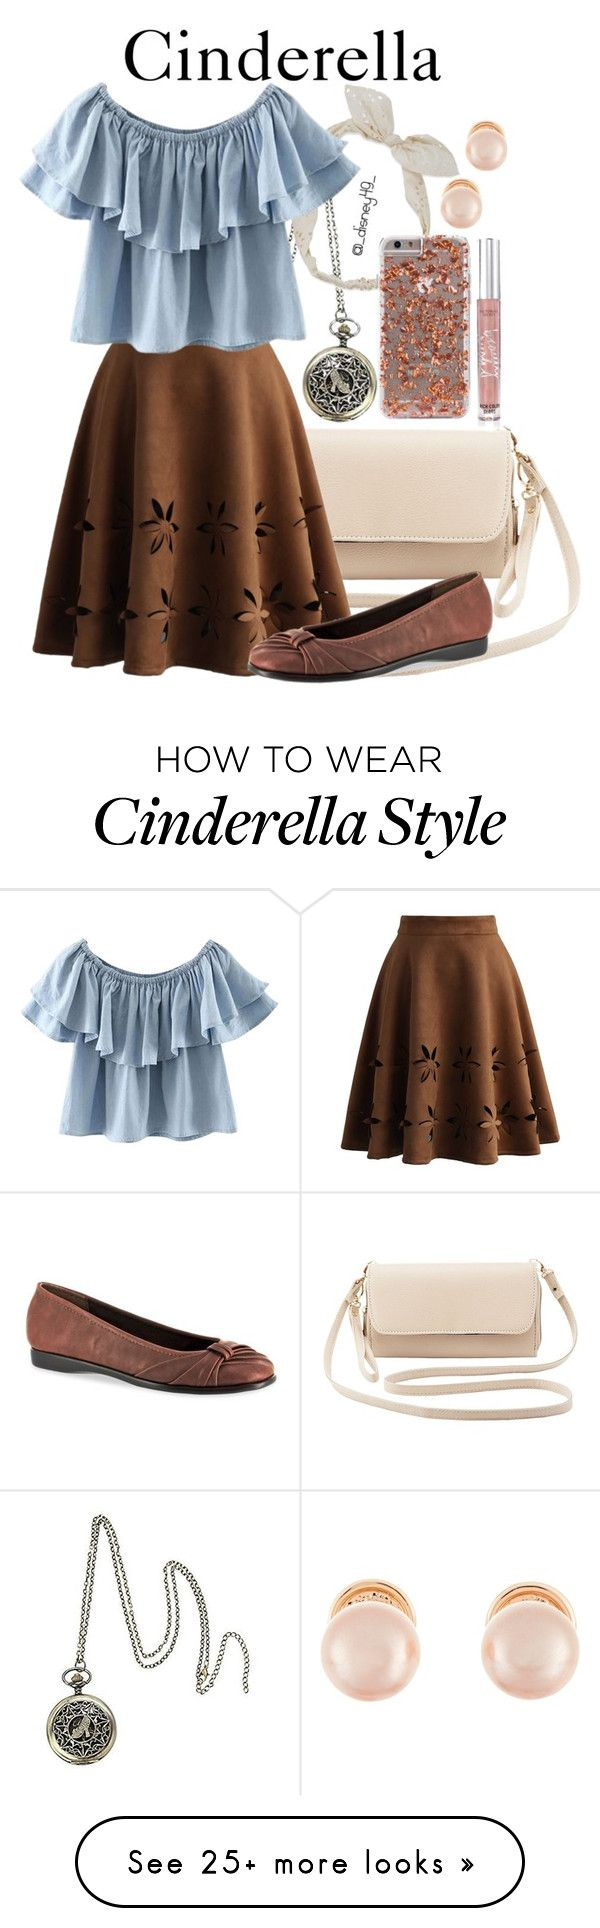 """Cinderella"" by disney49 on Polyvore featuring Disney, Carole, Charlotte Russe, Chicwish, Chicnova Fashion, Easy Street, Kenneth Jay Lane and Victoria's Secret"